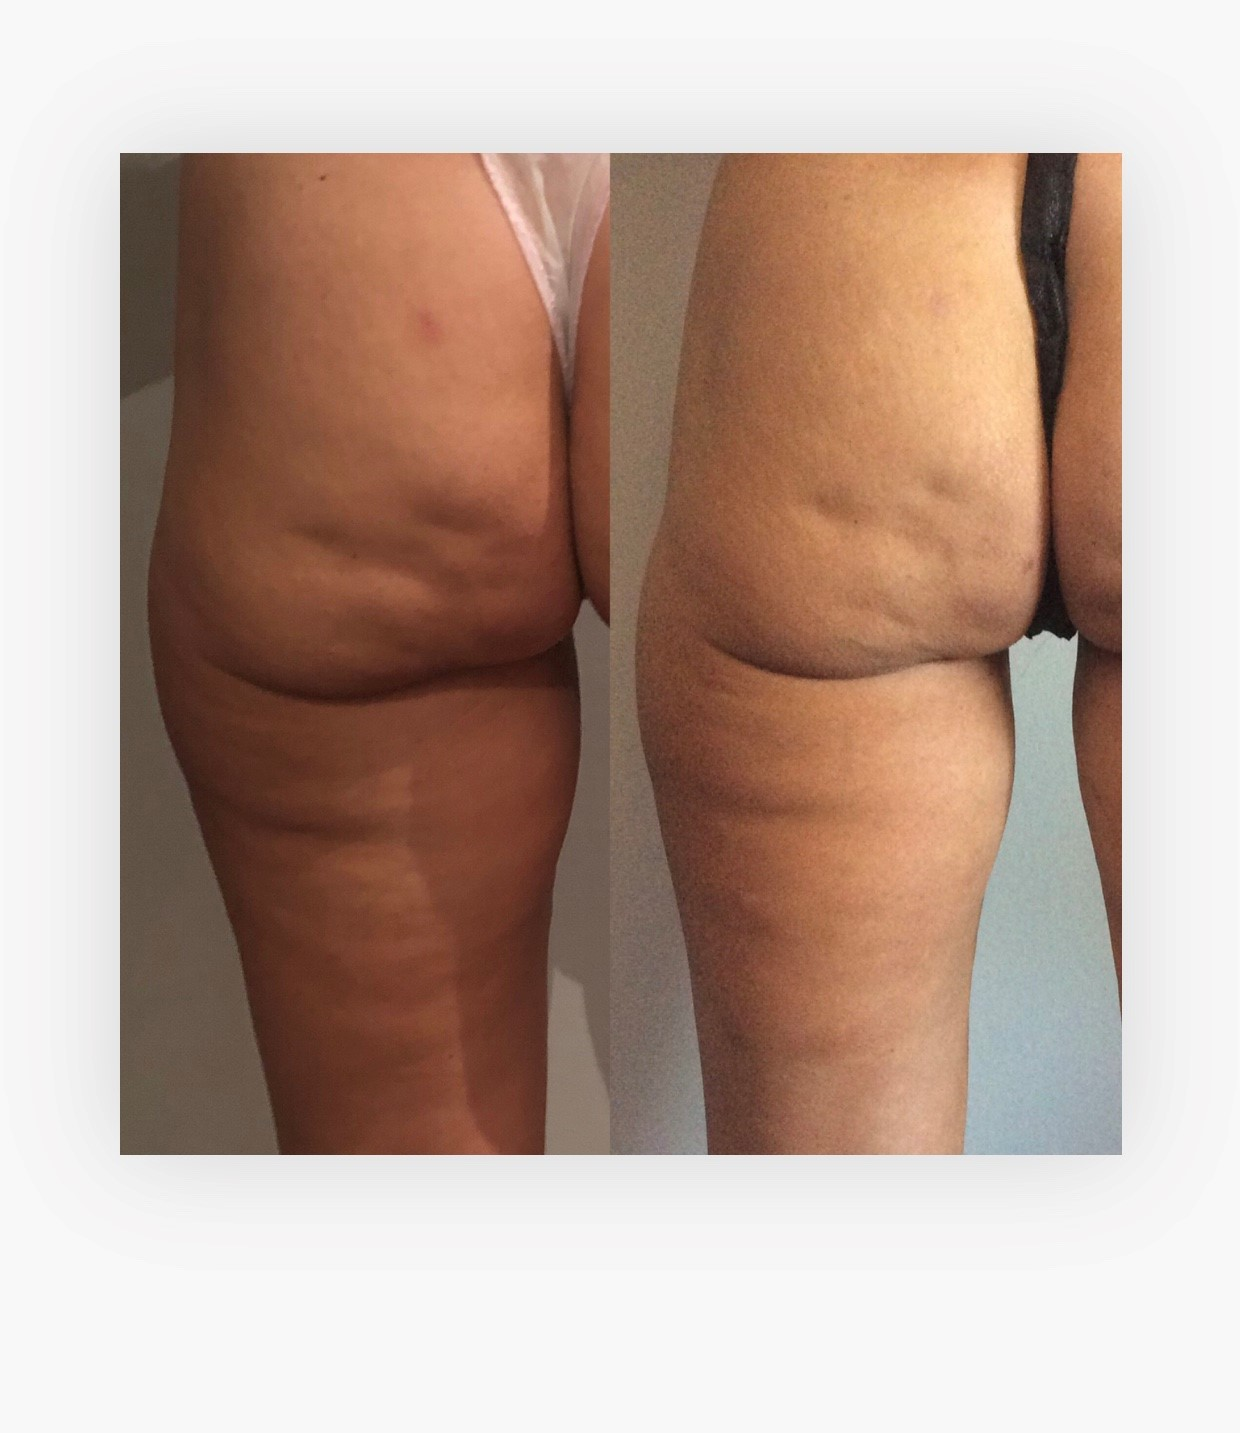 LP G Alliance Cellulite Reduction Treatment - Half way through course